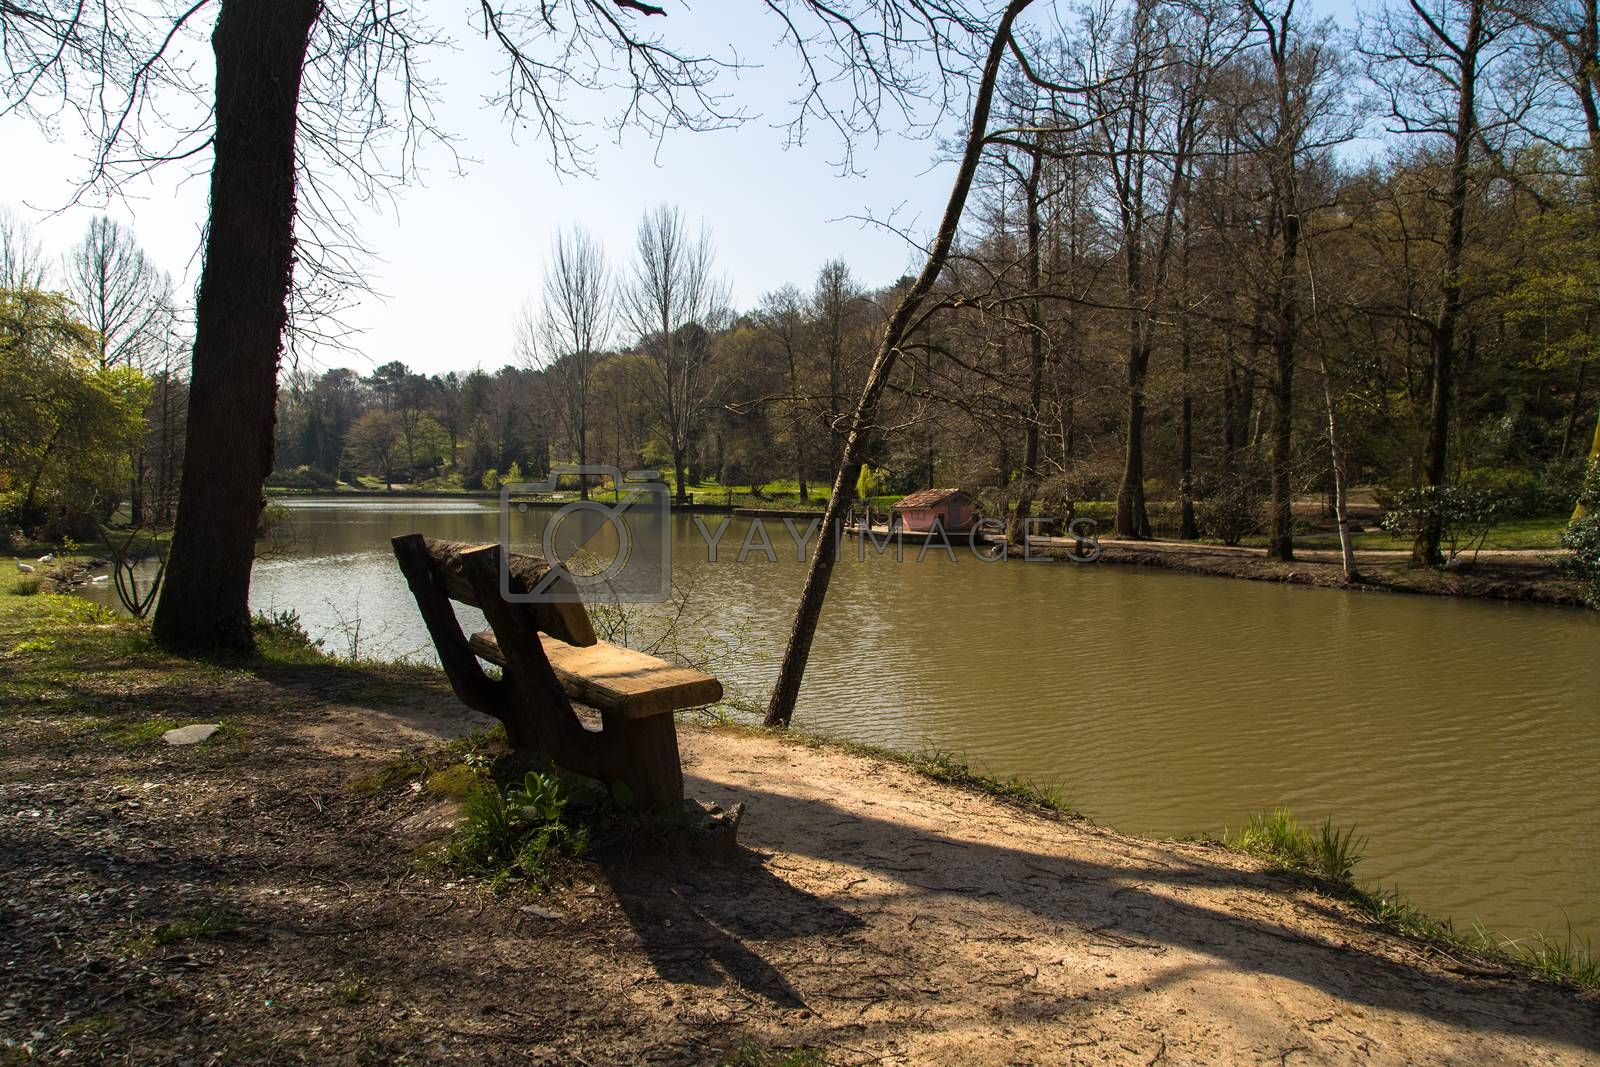 Lake in forest, river among trees, bench in riverside.